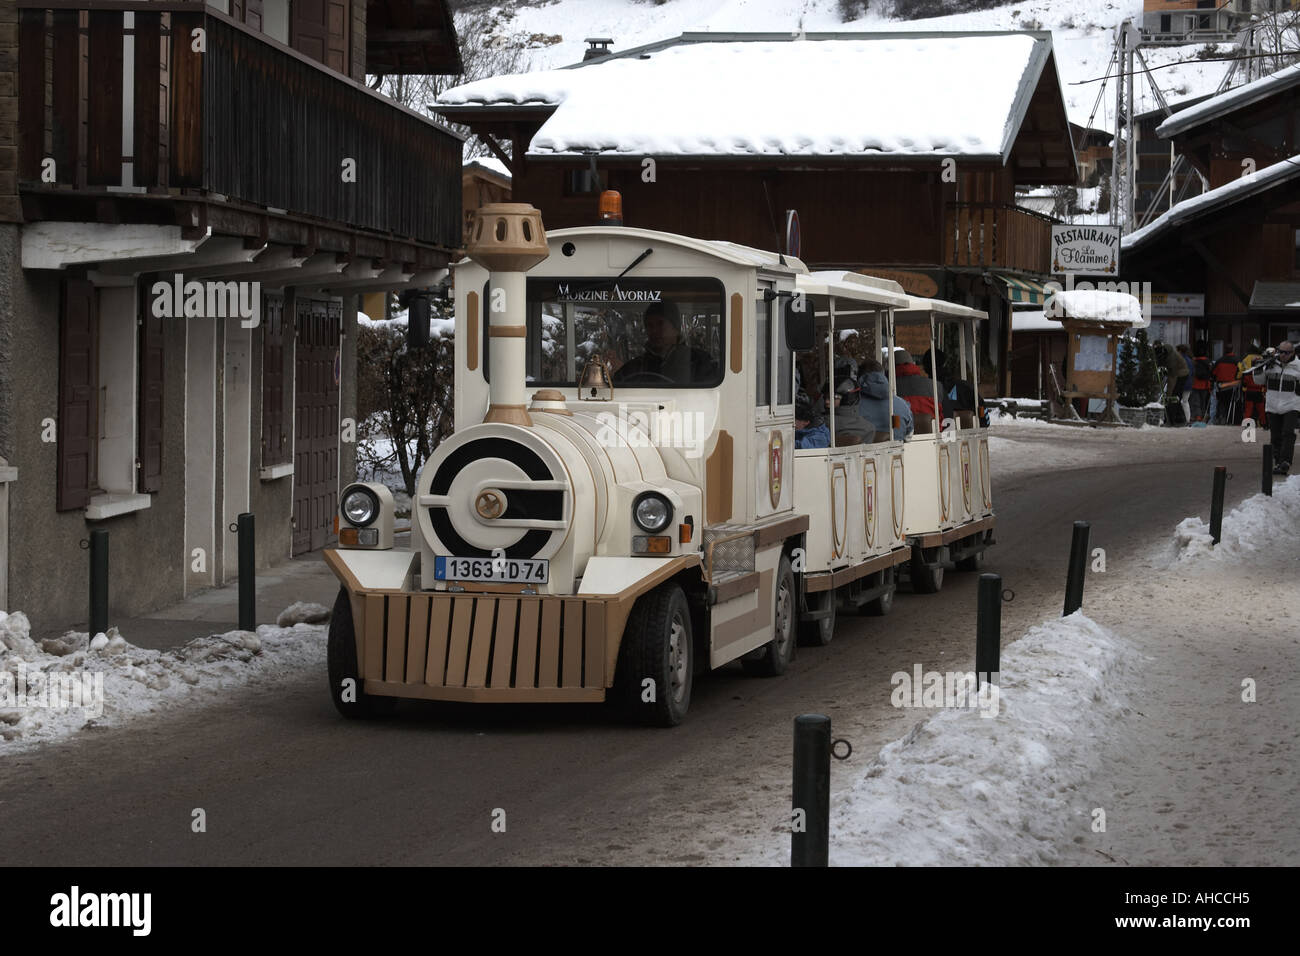 Winter Snowy Scene With Train Bus In Snow Ski Resort Town Of